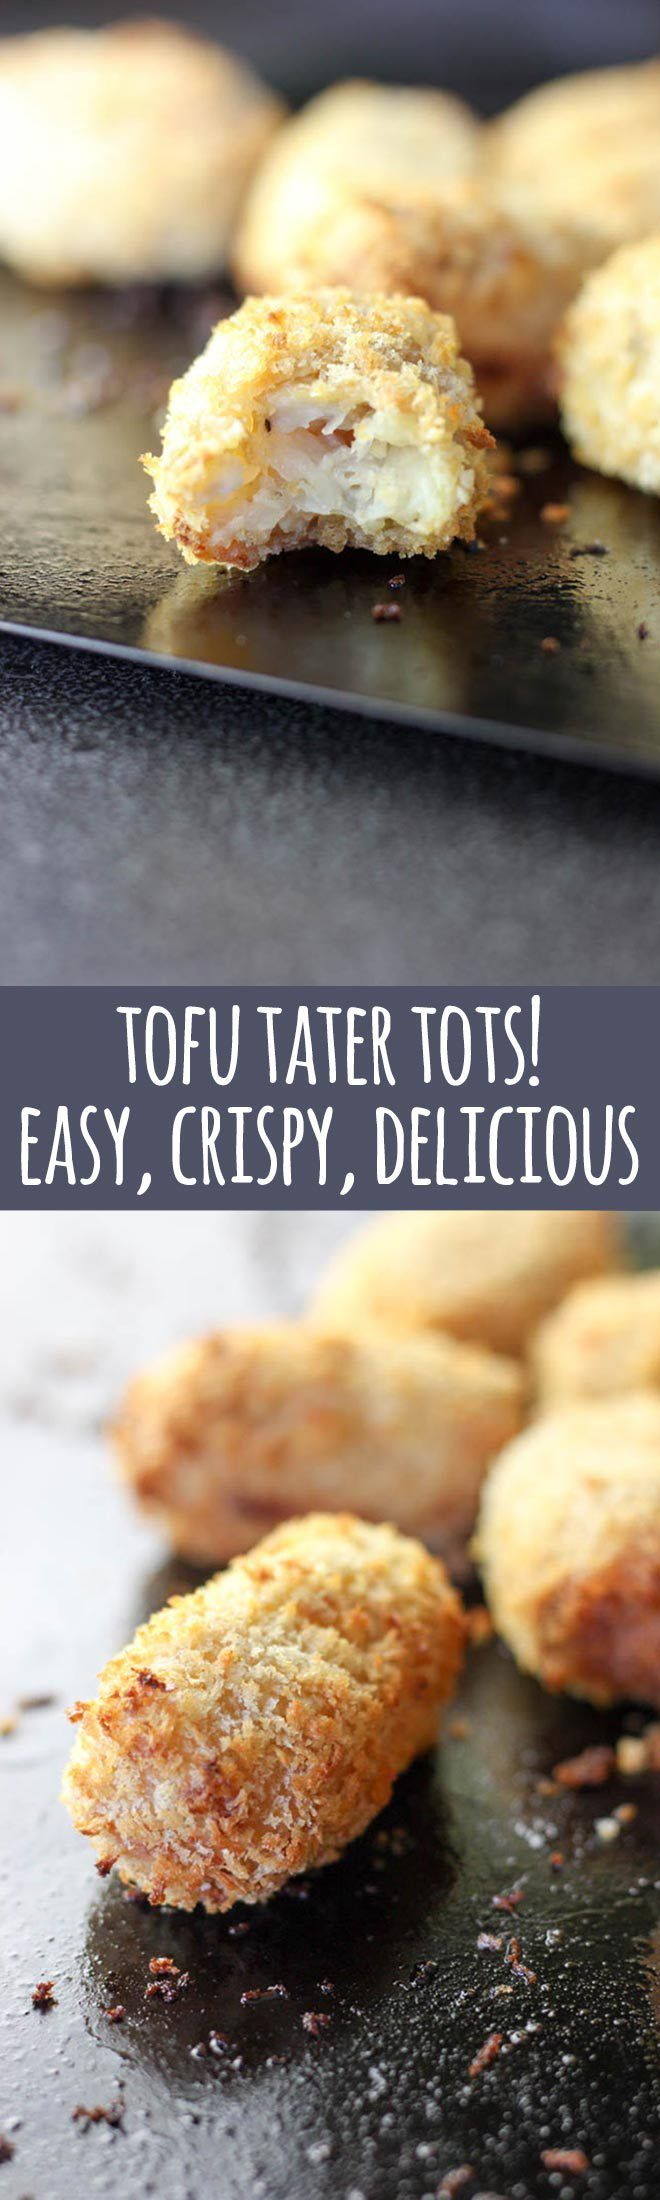 Tofu tater tots are easy to make, crispy and delicious, and a perfect kid-friendly vegan option.